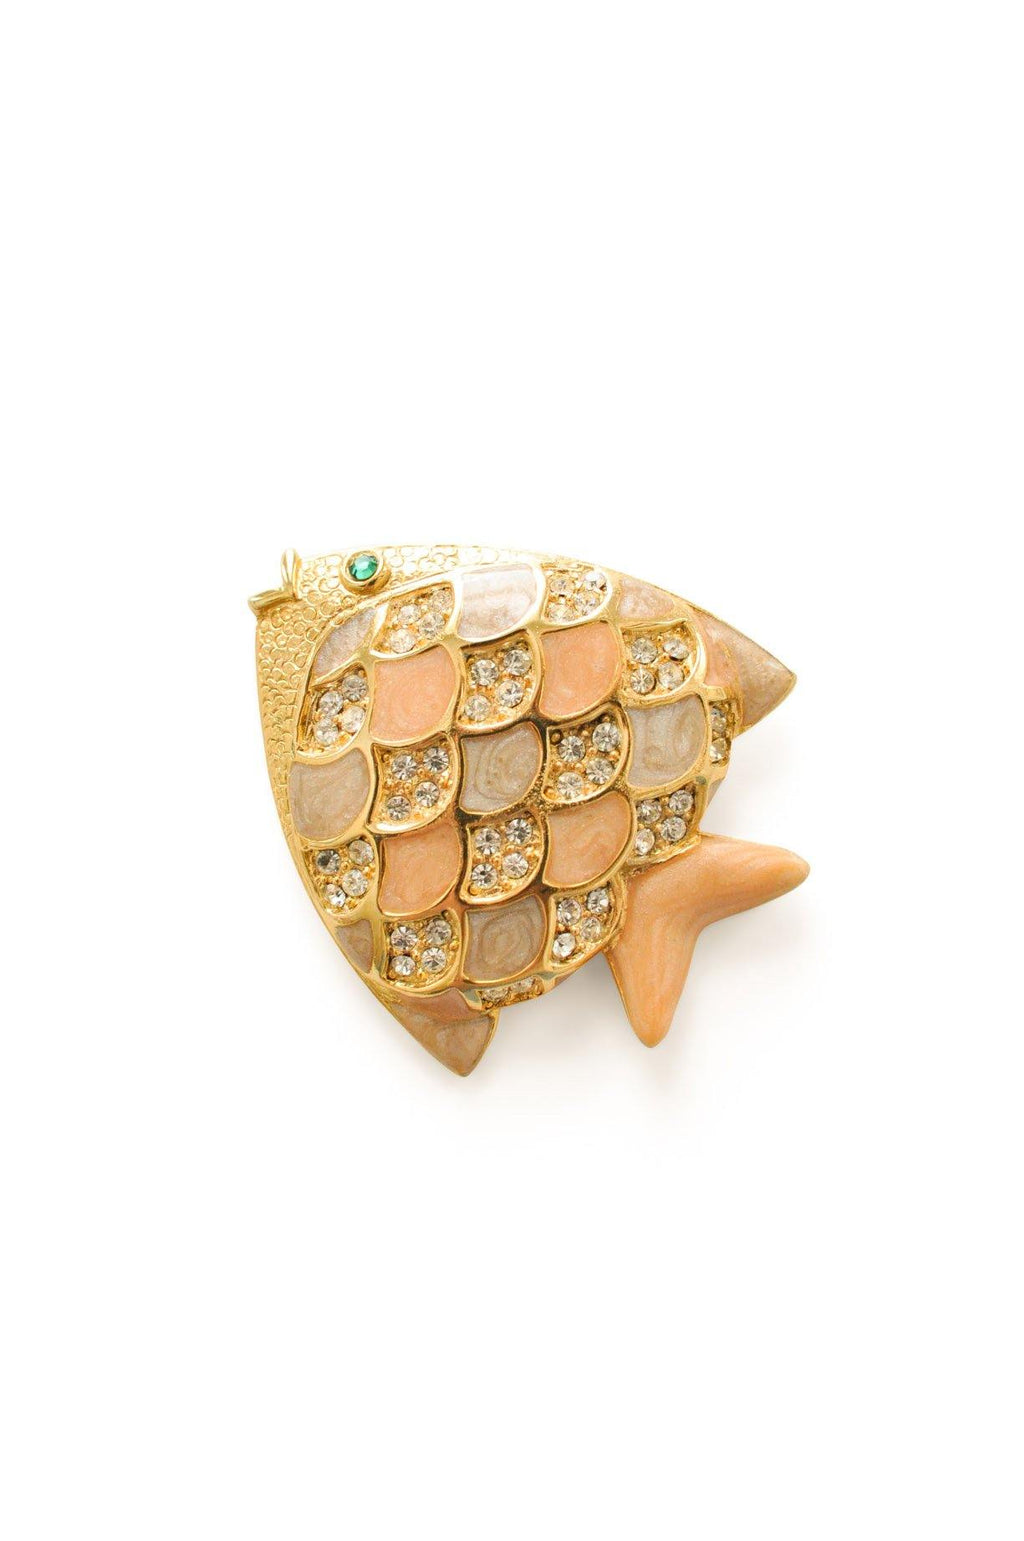 Enamel Fish Brooch